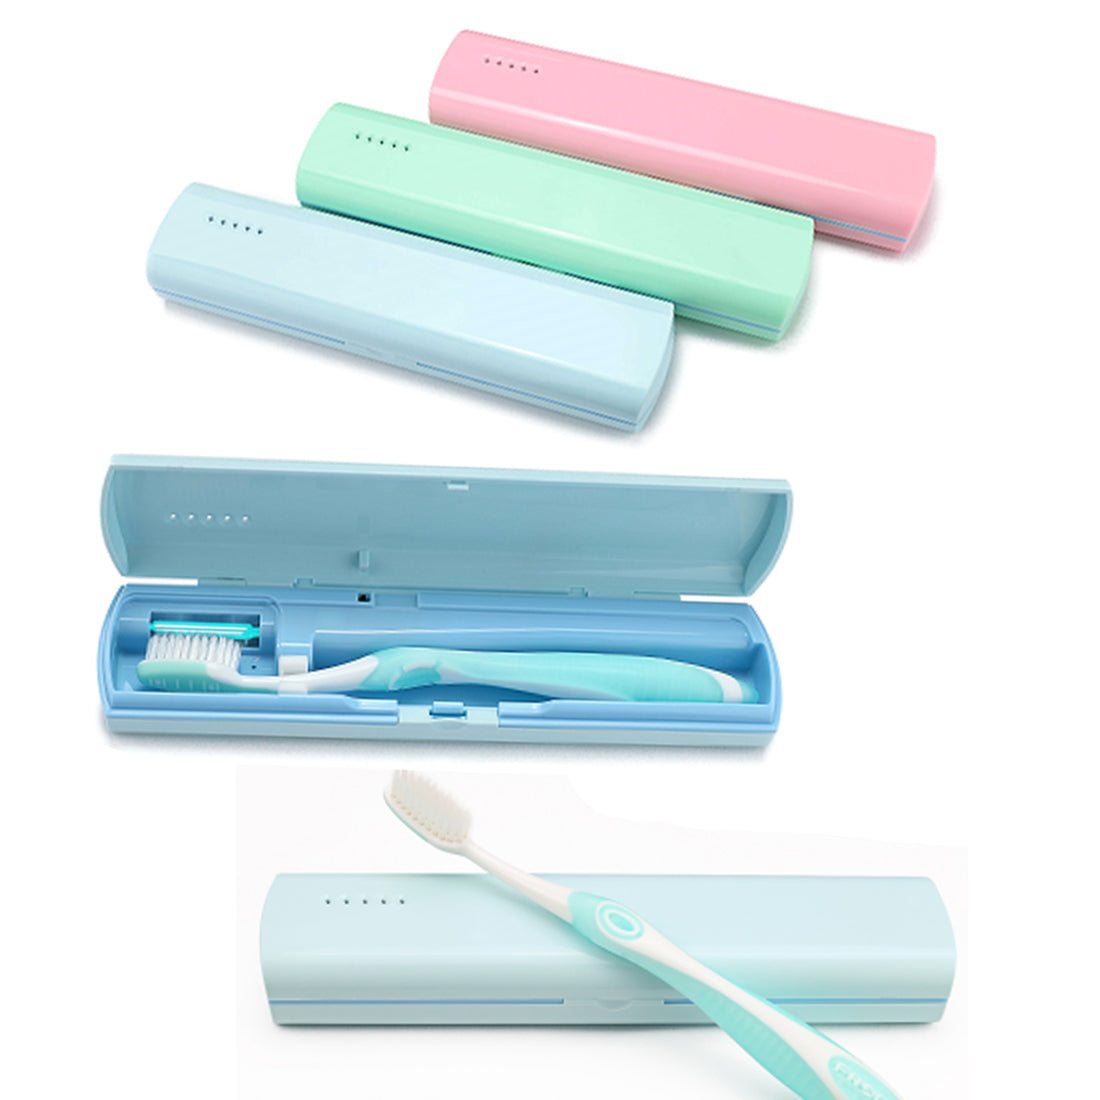 Auto-timer UV Toothbrush Sanitizer For Health Care - SOP-TECHNOLOGIES, INC.